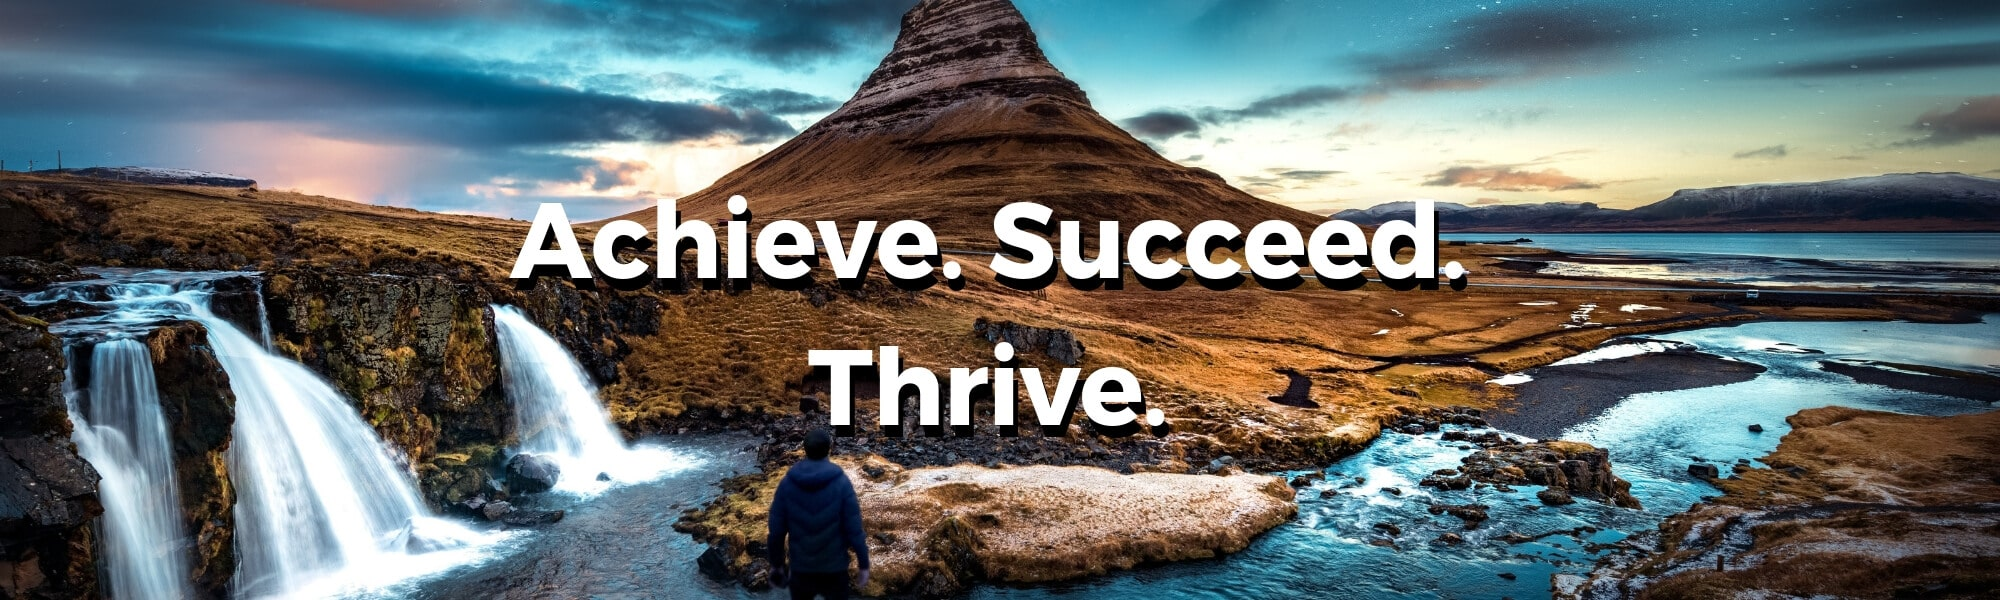 Achieve. Succeed. Thrive. The Exceptional Skills